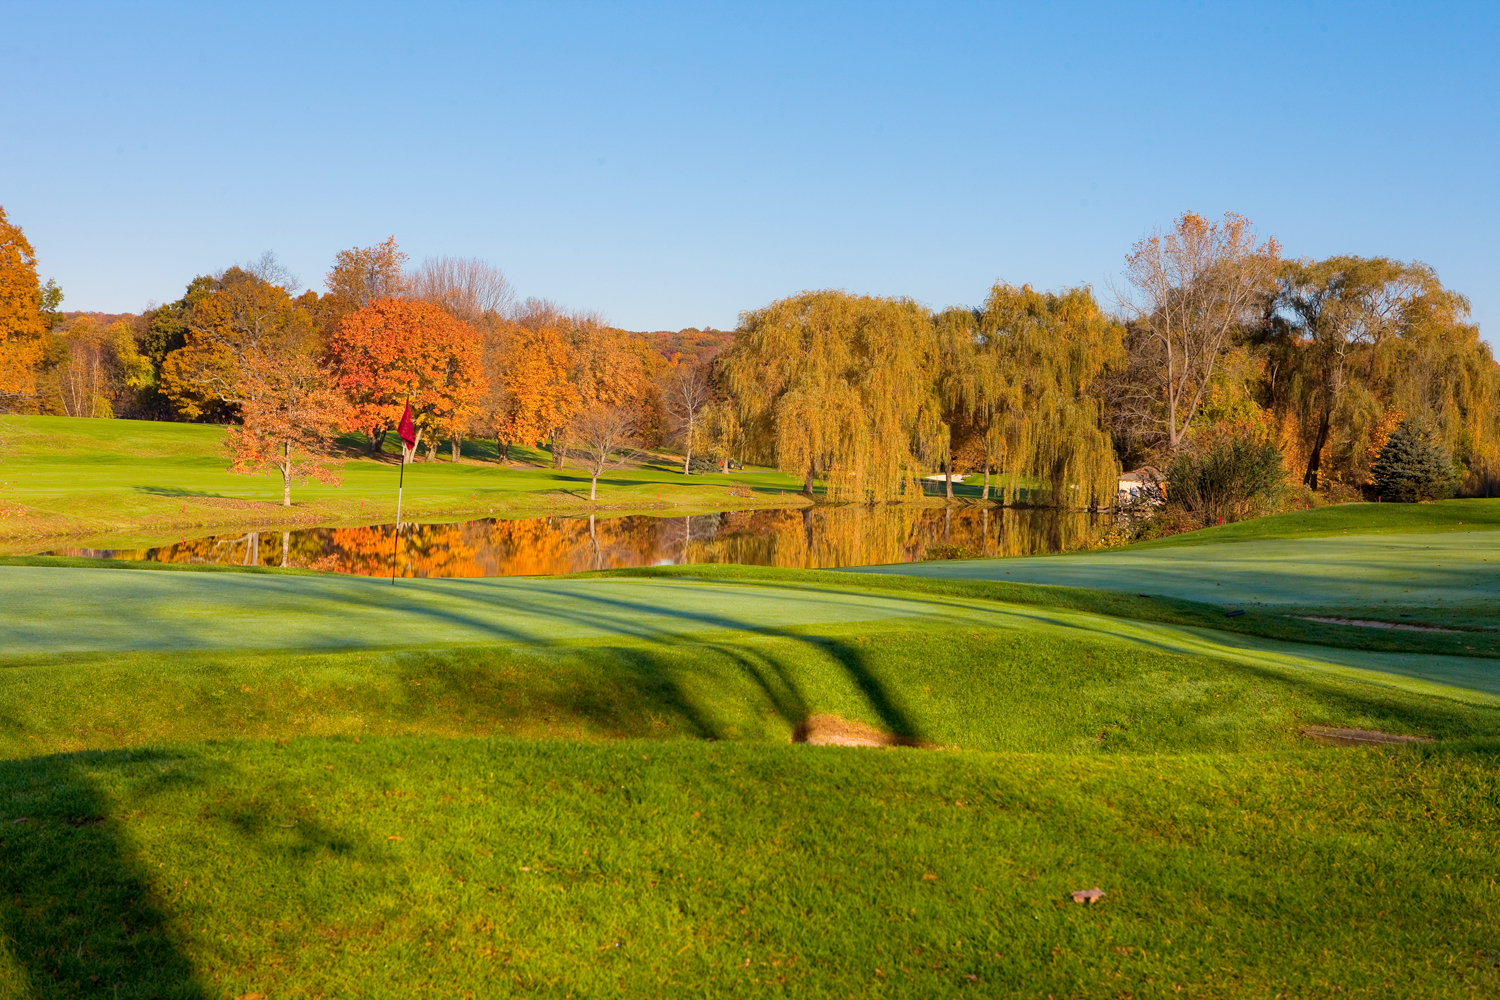 Brynwood Golf & Country Club Debuts in Armonk, NY